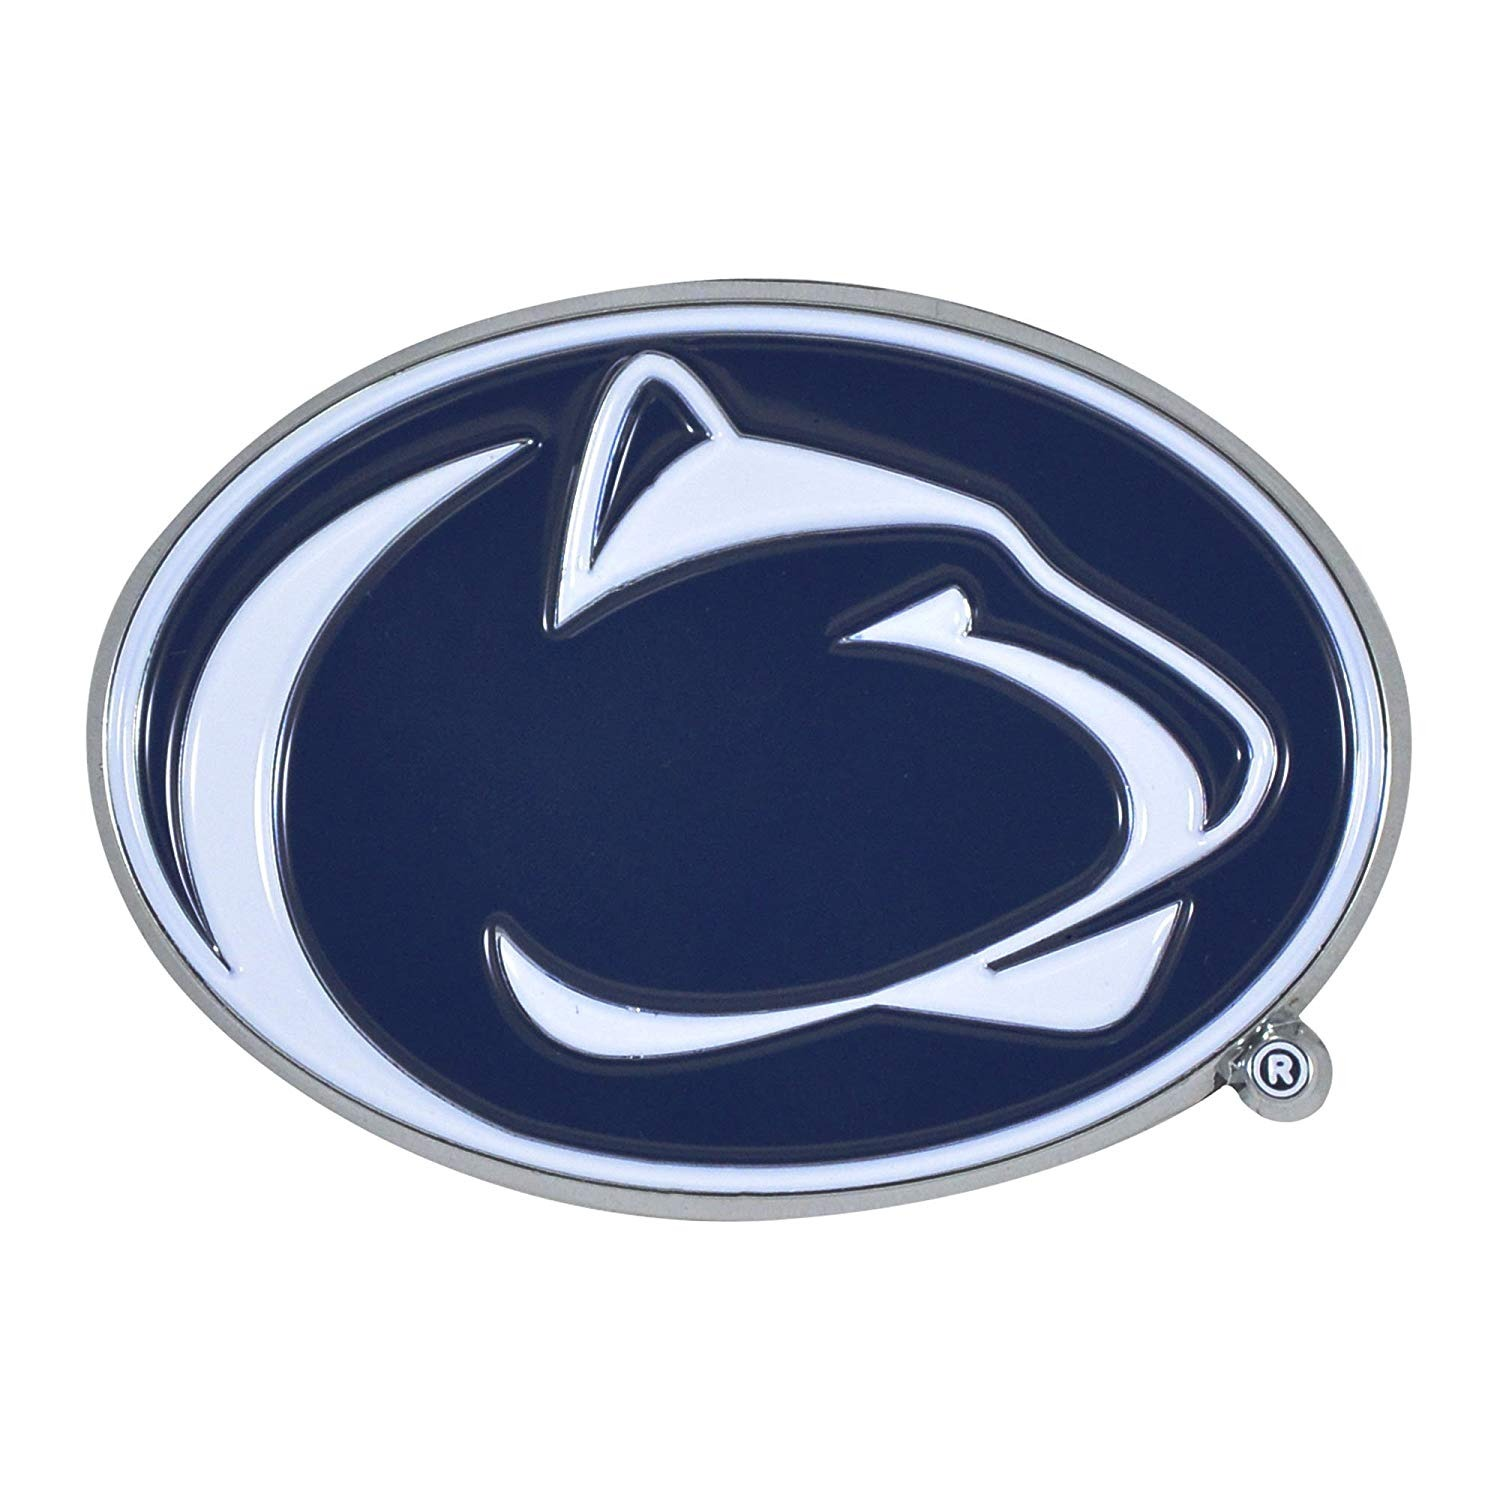 Details about Penn State Nittany Lion Premium Solid Metal COLOR Auto Emblem  Decal University.